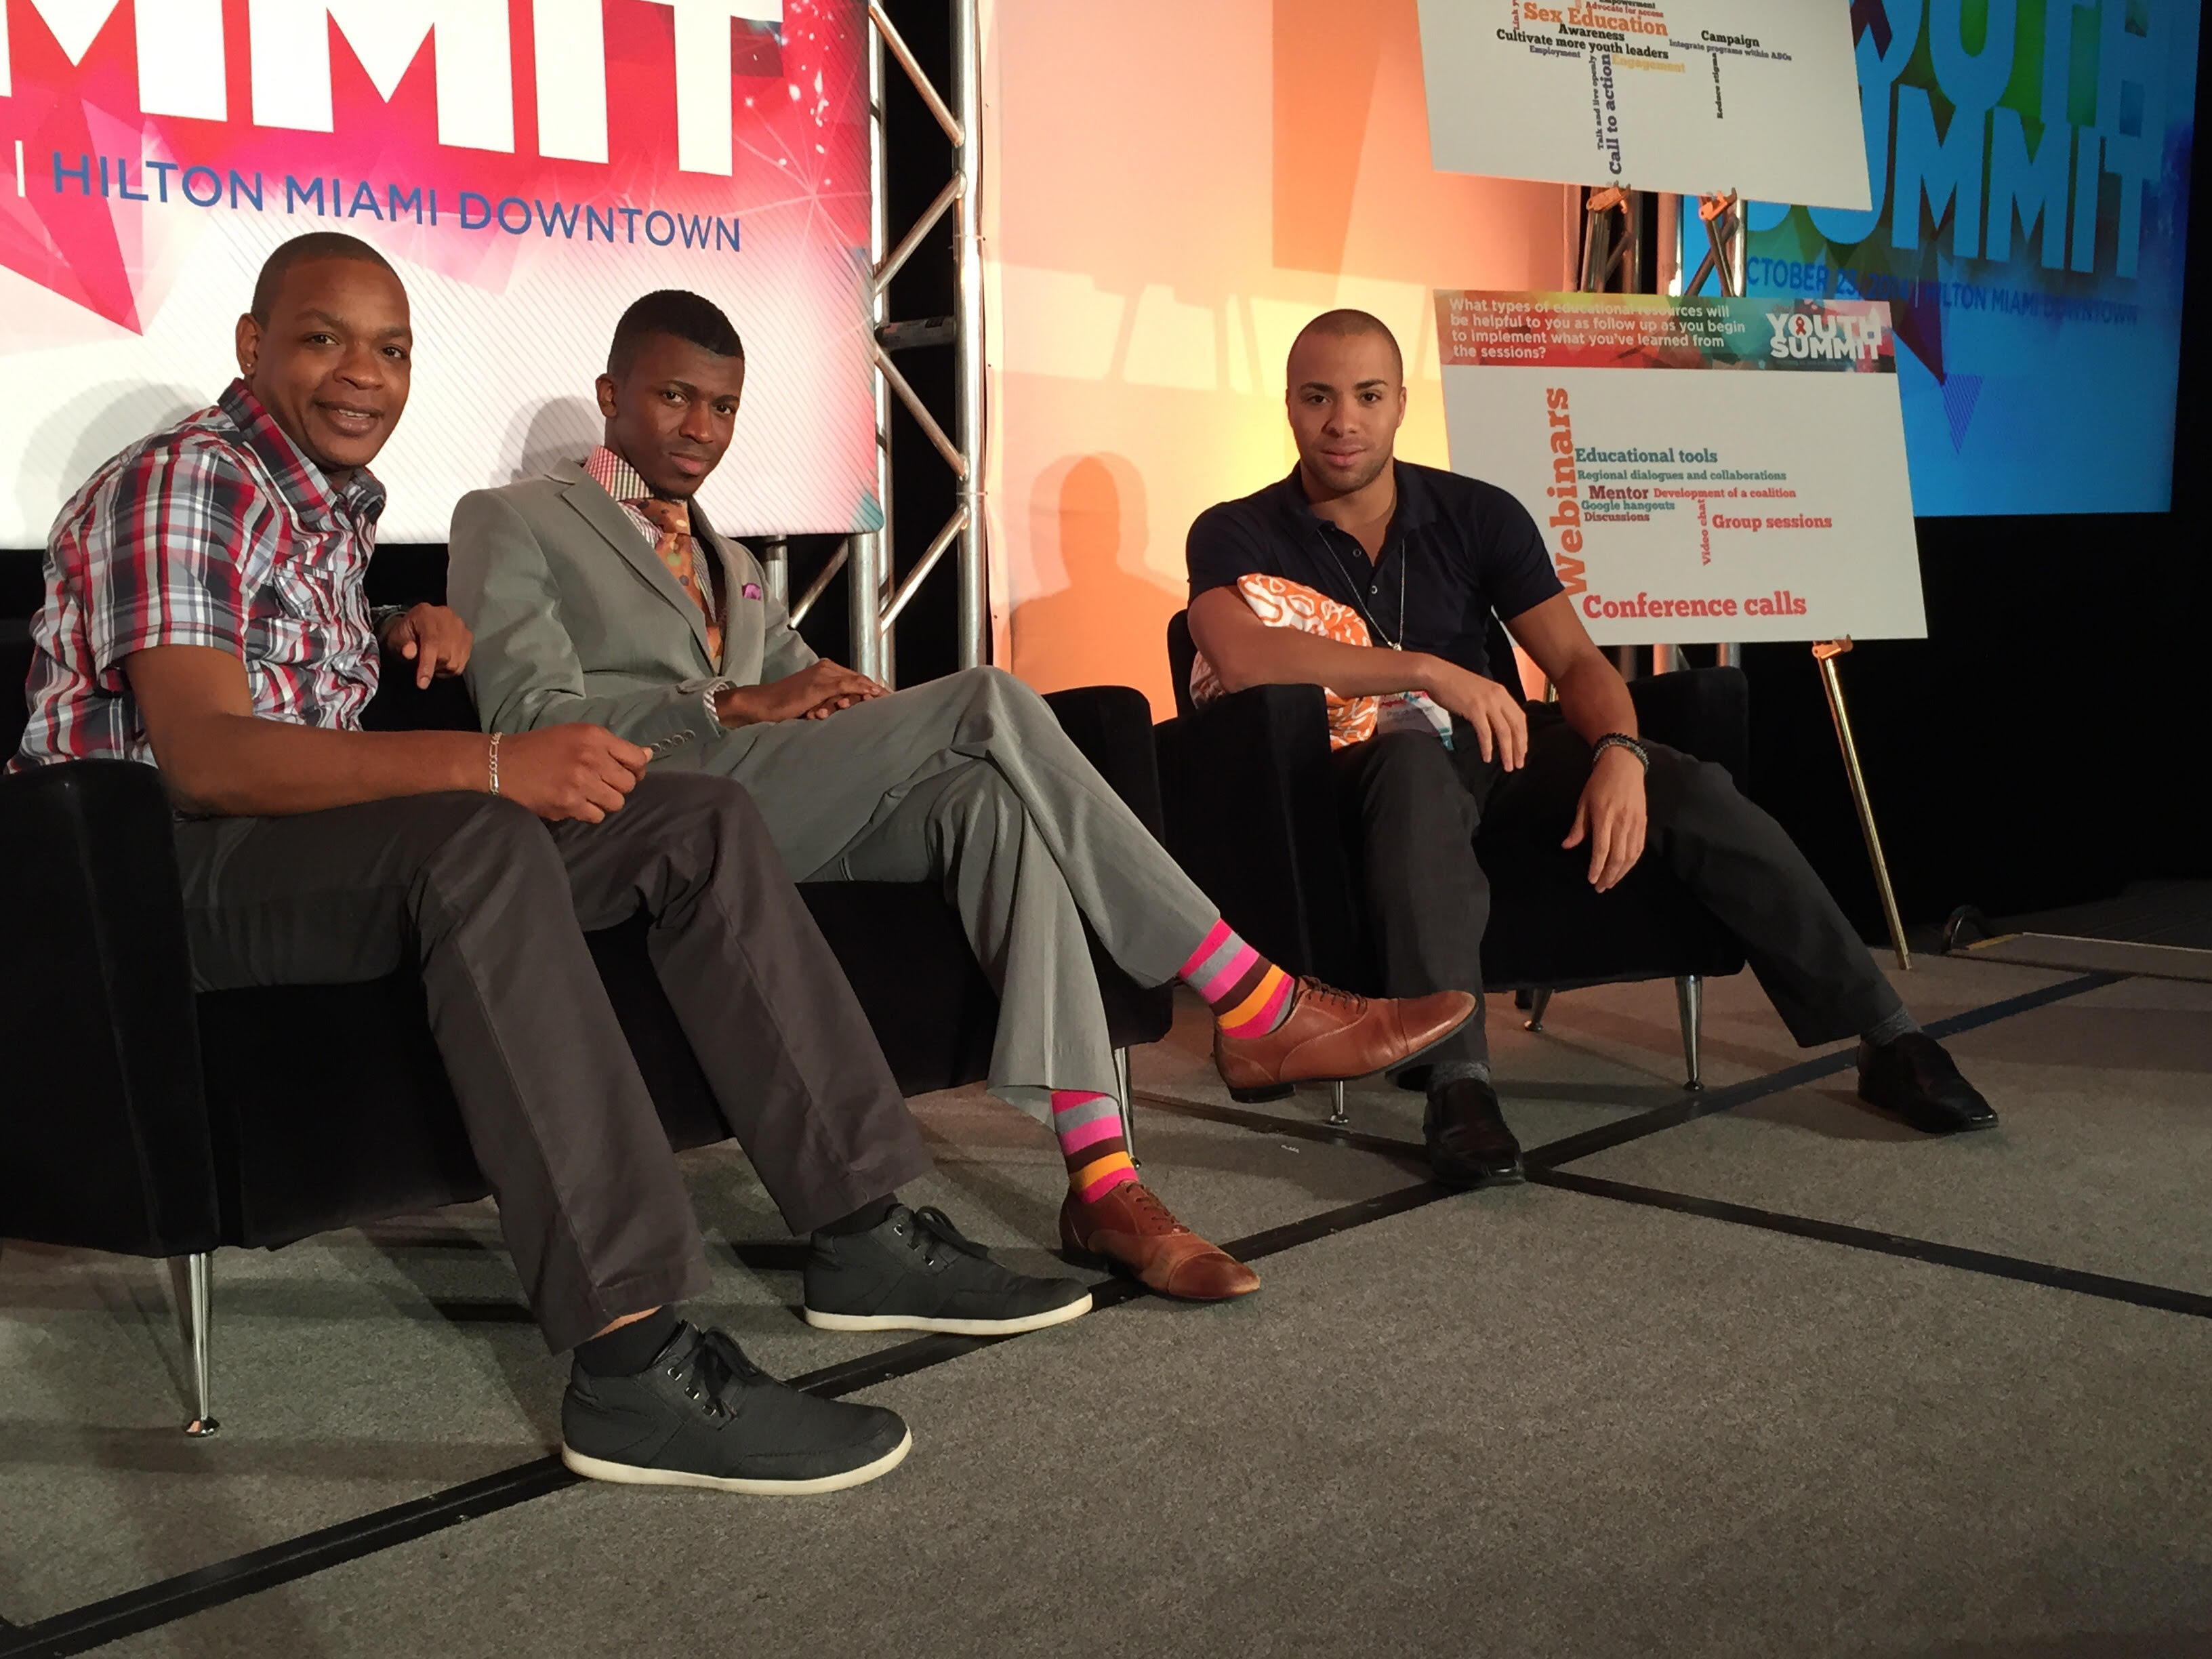 Anthony Roberts Jr., Ederick Johnson, Patrick Ingram at Viiv Youth Summit, Miami, 2014.